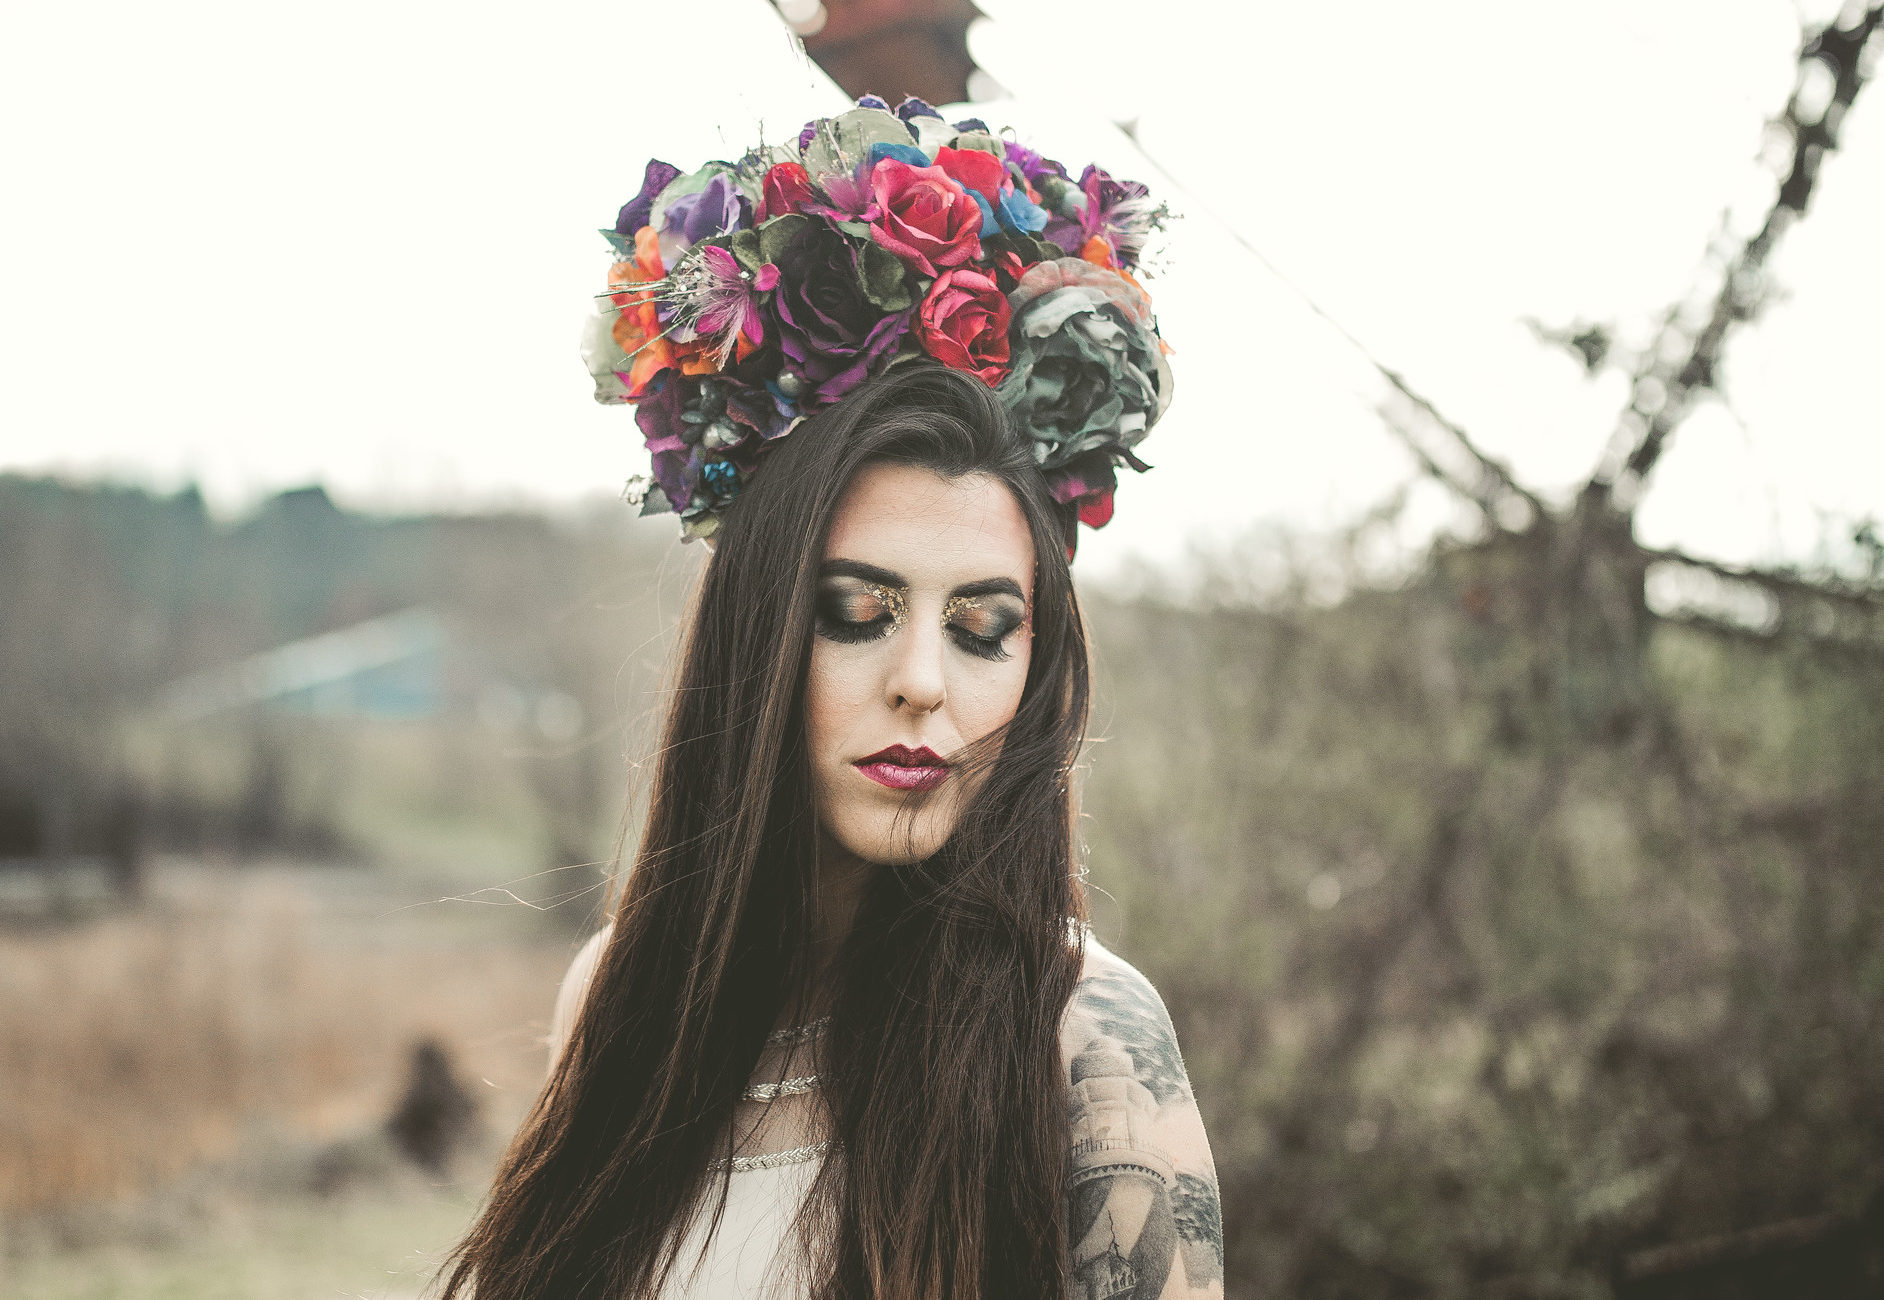 This photo is from a collaborative shoot with Meg U Photography with Kat Gibson as our model. The flower crown was crafted by Sandra Eileen, owner of Every Girl A Goddess.